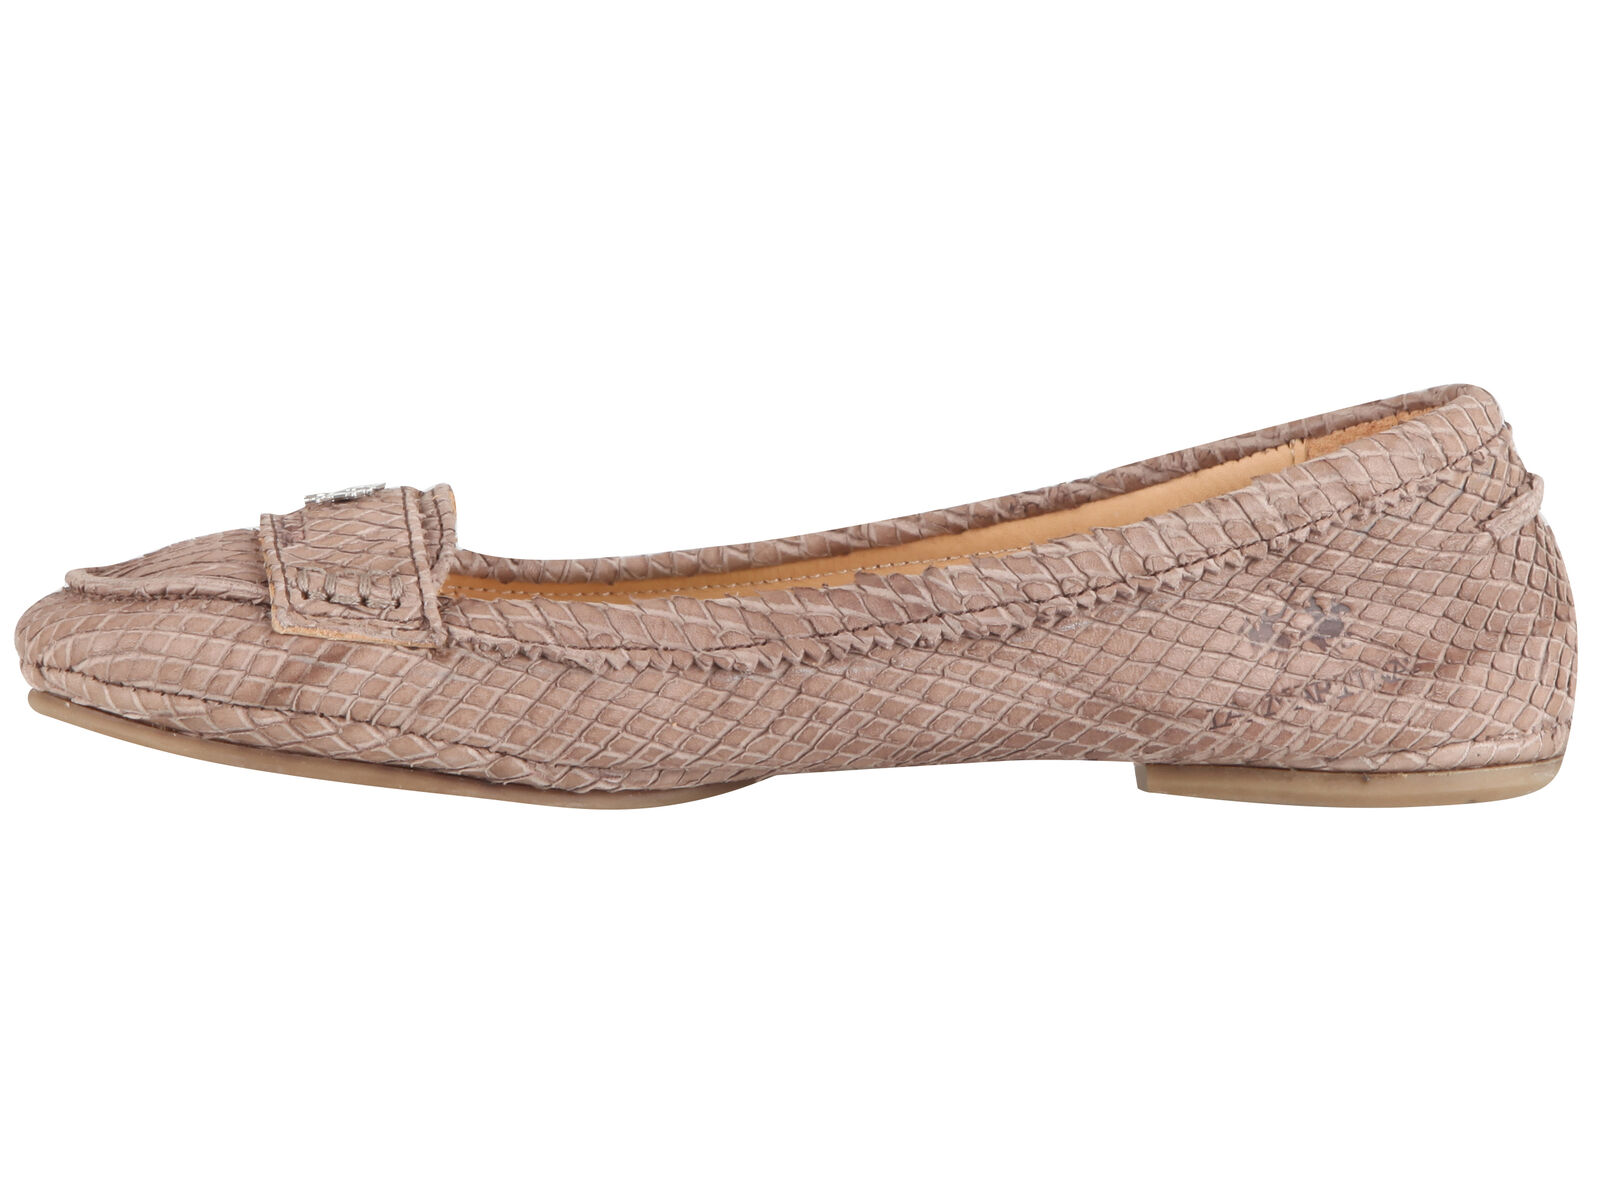 La Martina Polo mujer python snakeskin leather zapatos ballerinas EU 37 UK 4